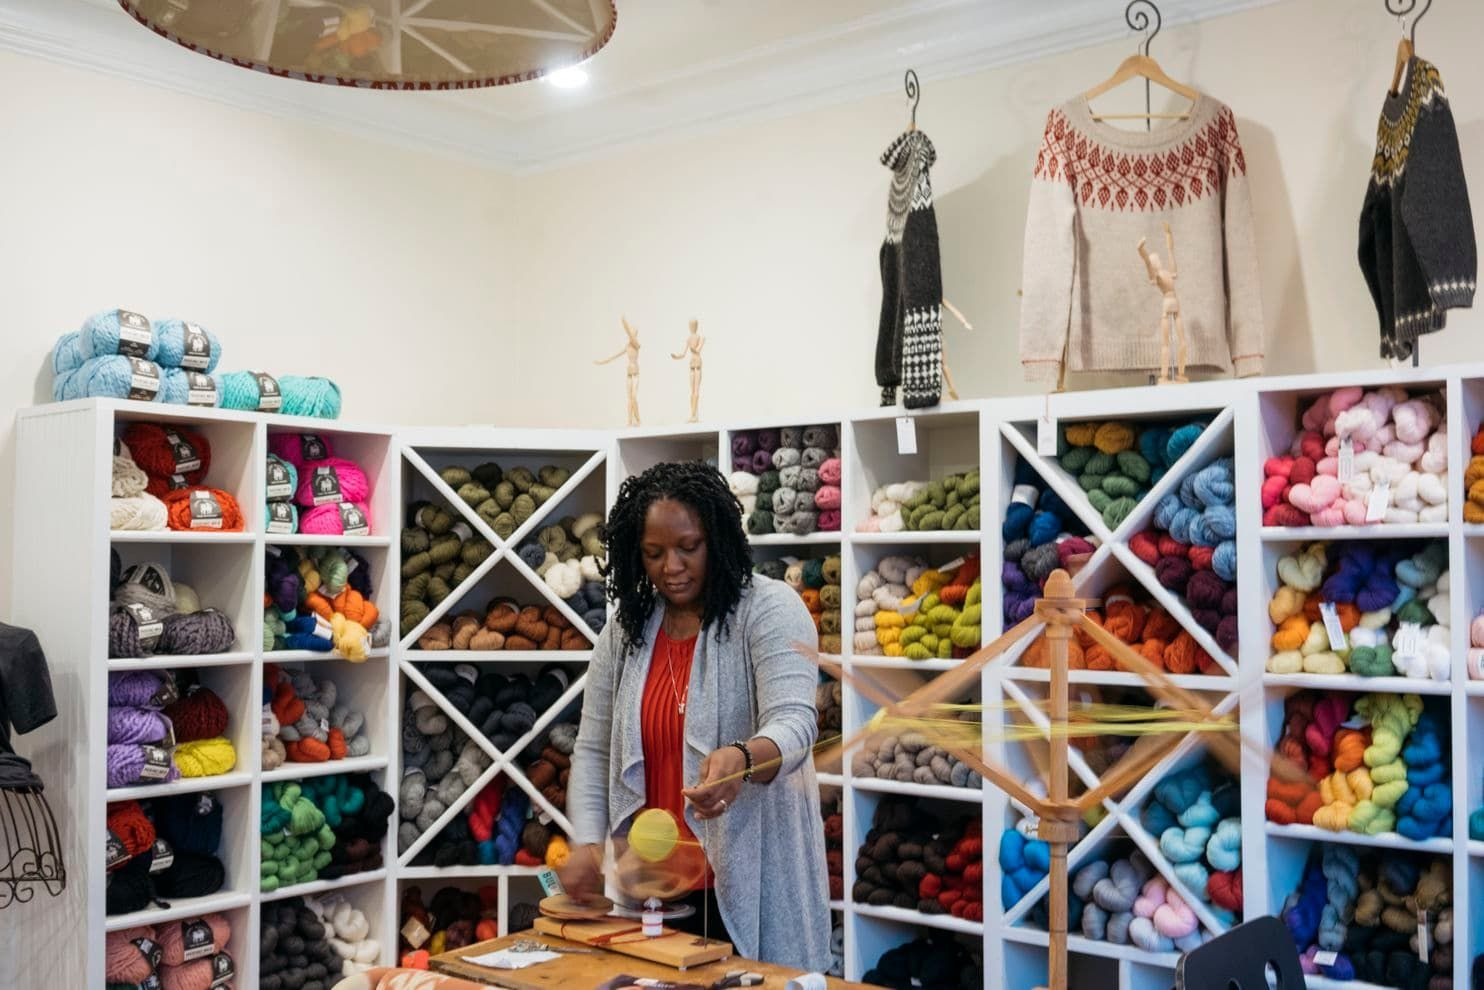 This researcher studied 400,000 knitters and discovered